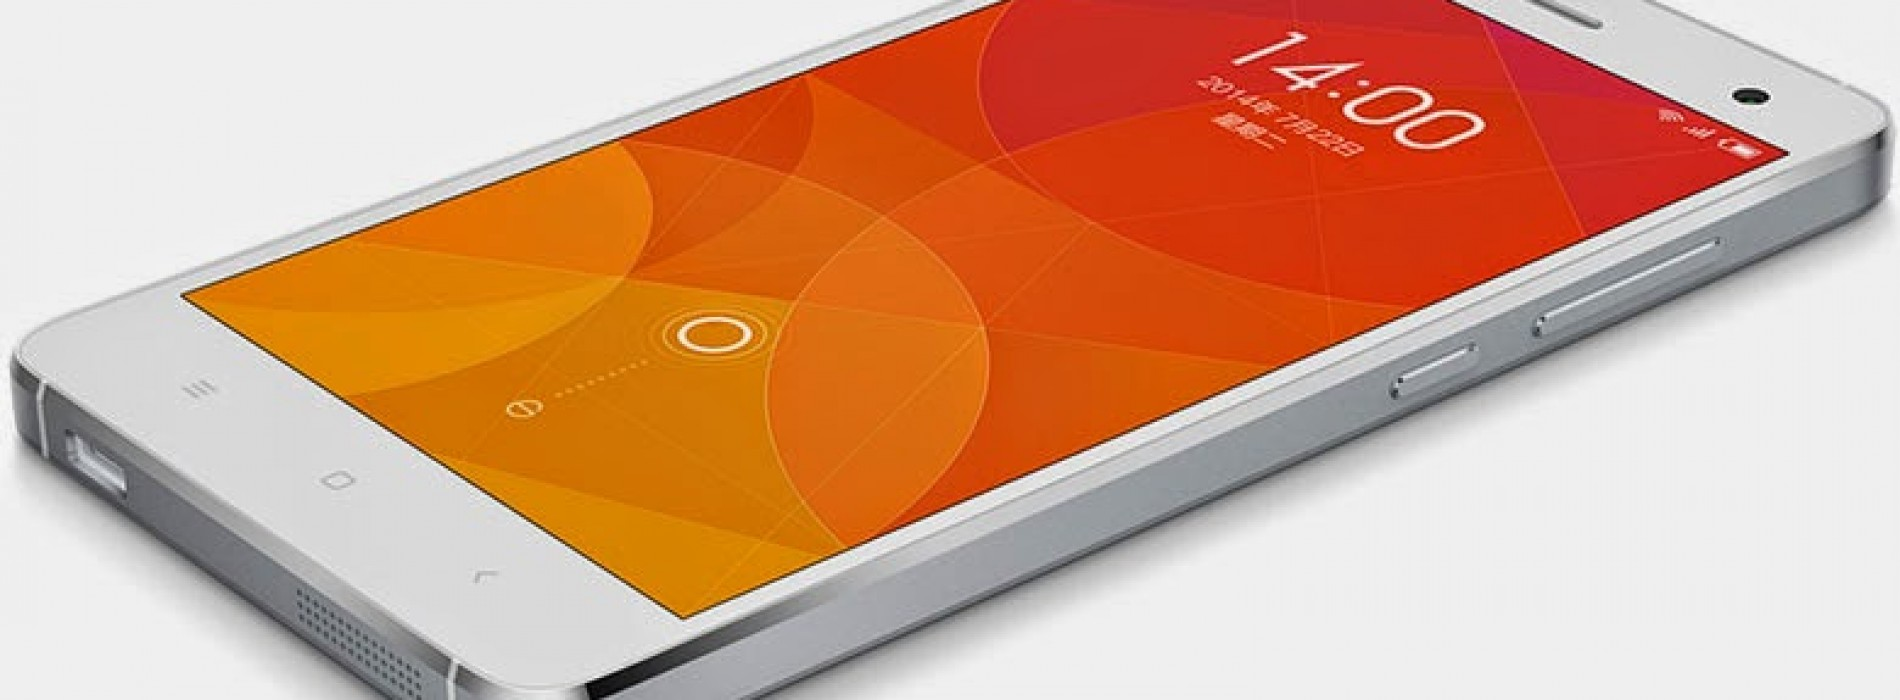 Try these awesome abstract wallpapers from Xiaomi's Mi 4